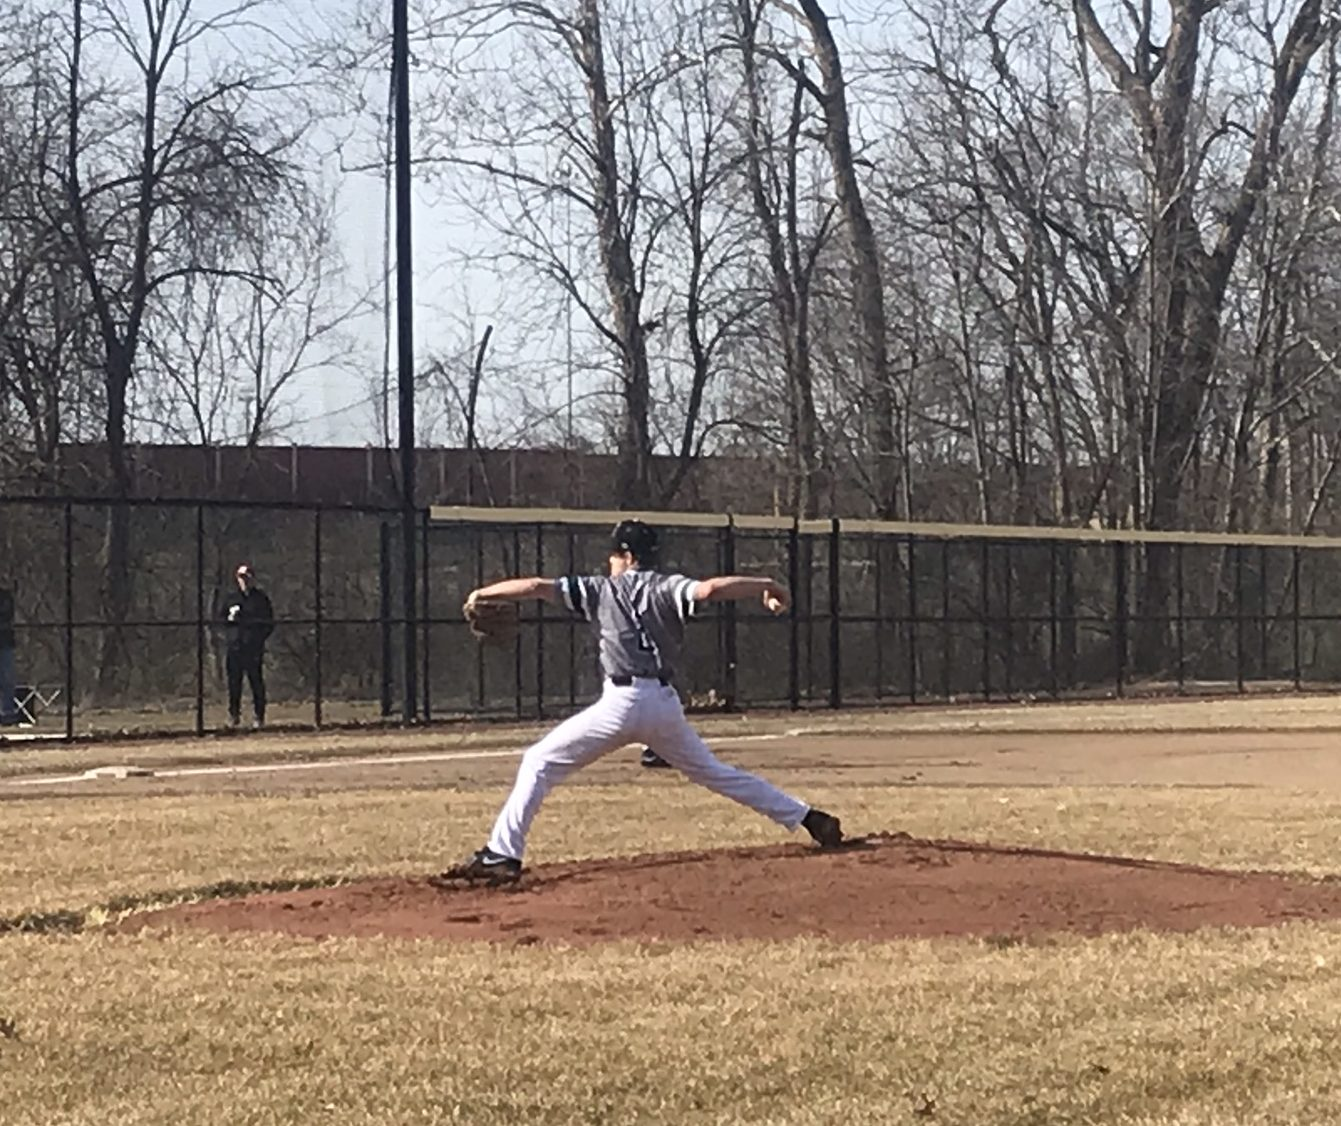 Knights Baseball: A rough 6th inning at Wadsworth proves to be the difference in a 2-1 Opening Day setback for the Knights!